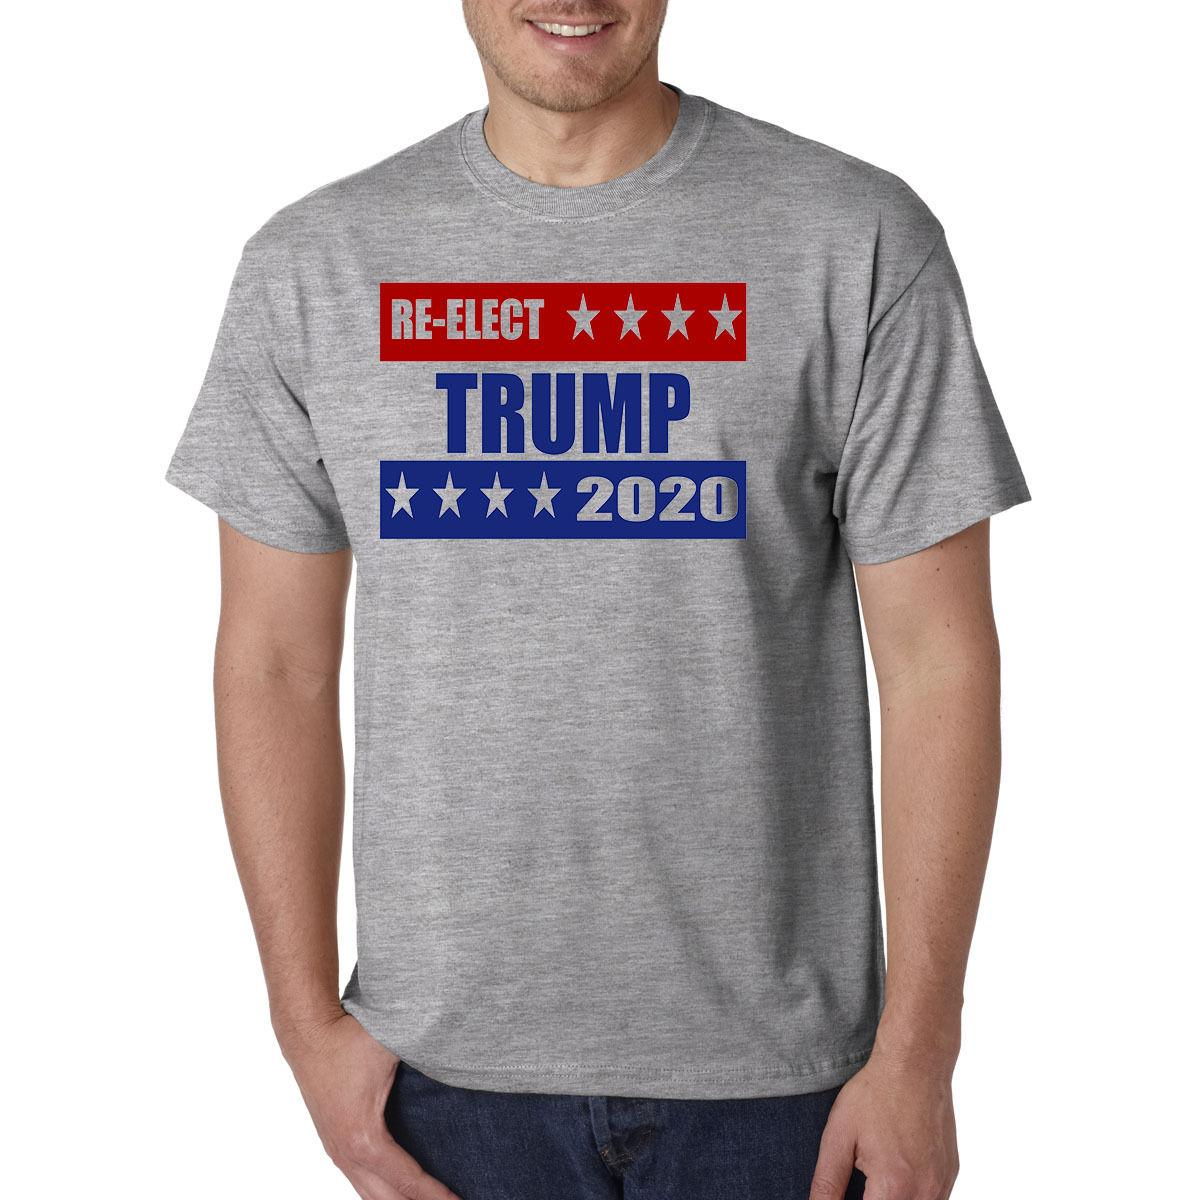 Image result for Re-elect trump 2020 t shirt